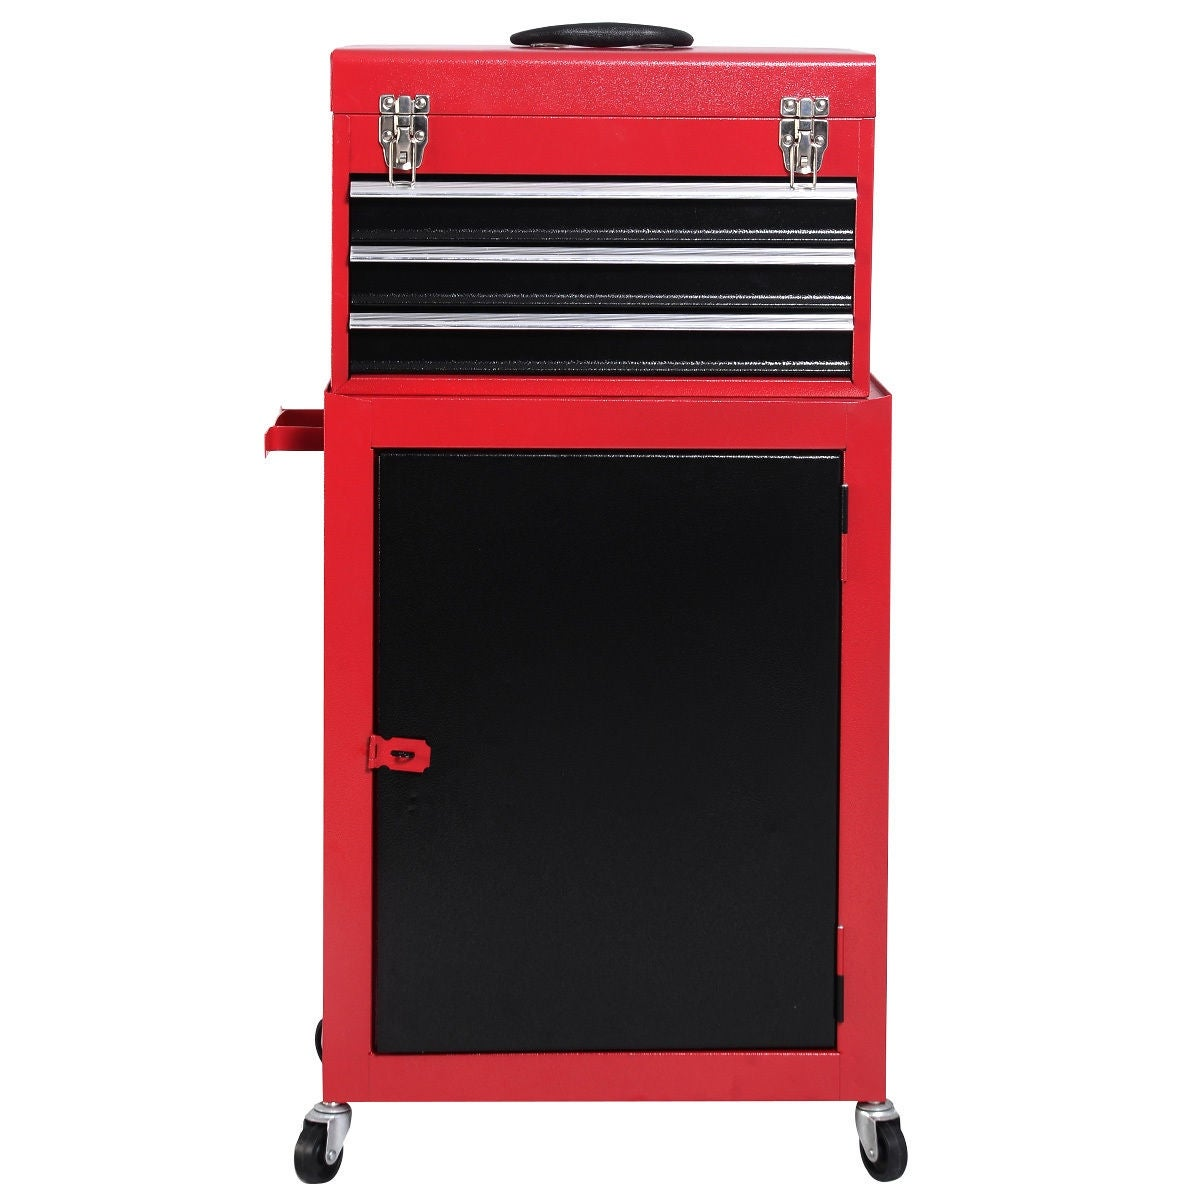 Shop Costway 2pc Mini Tool Chest u0026 Cabinet Storage Box Rolling Garage Toolbox Organizer - Free Shipping Today - Overstock.com - 16051715  sc 1 st  Overstock.com & Shop Costway 2pc Mini Tool Chest u0026 Cabinet Storage Box Rolling ...